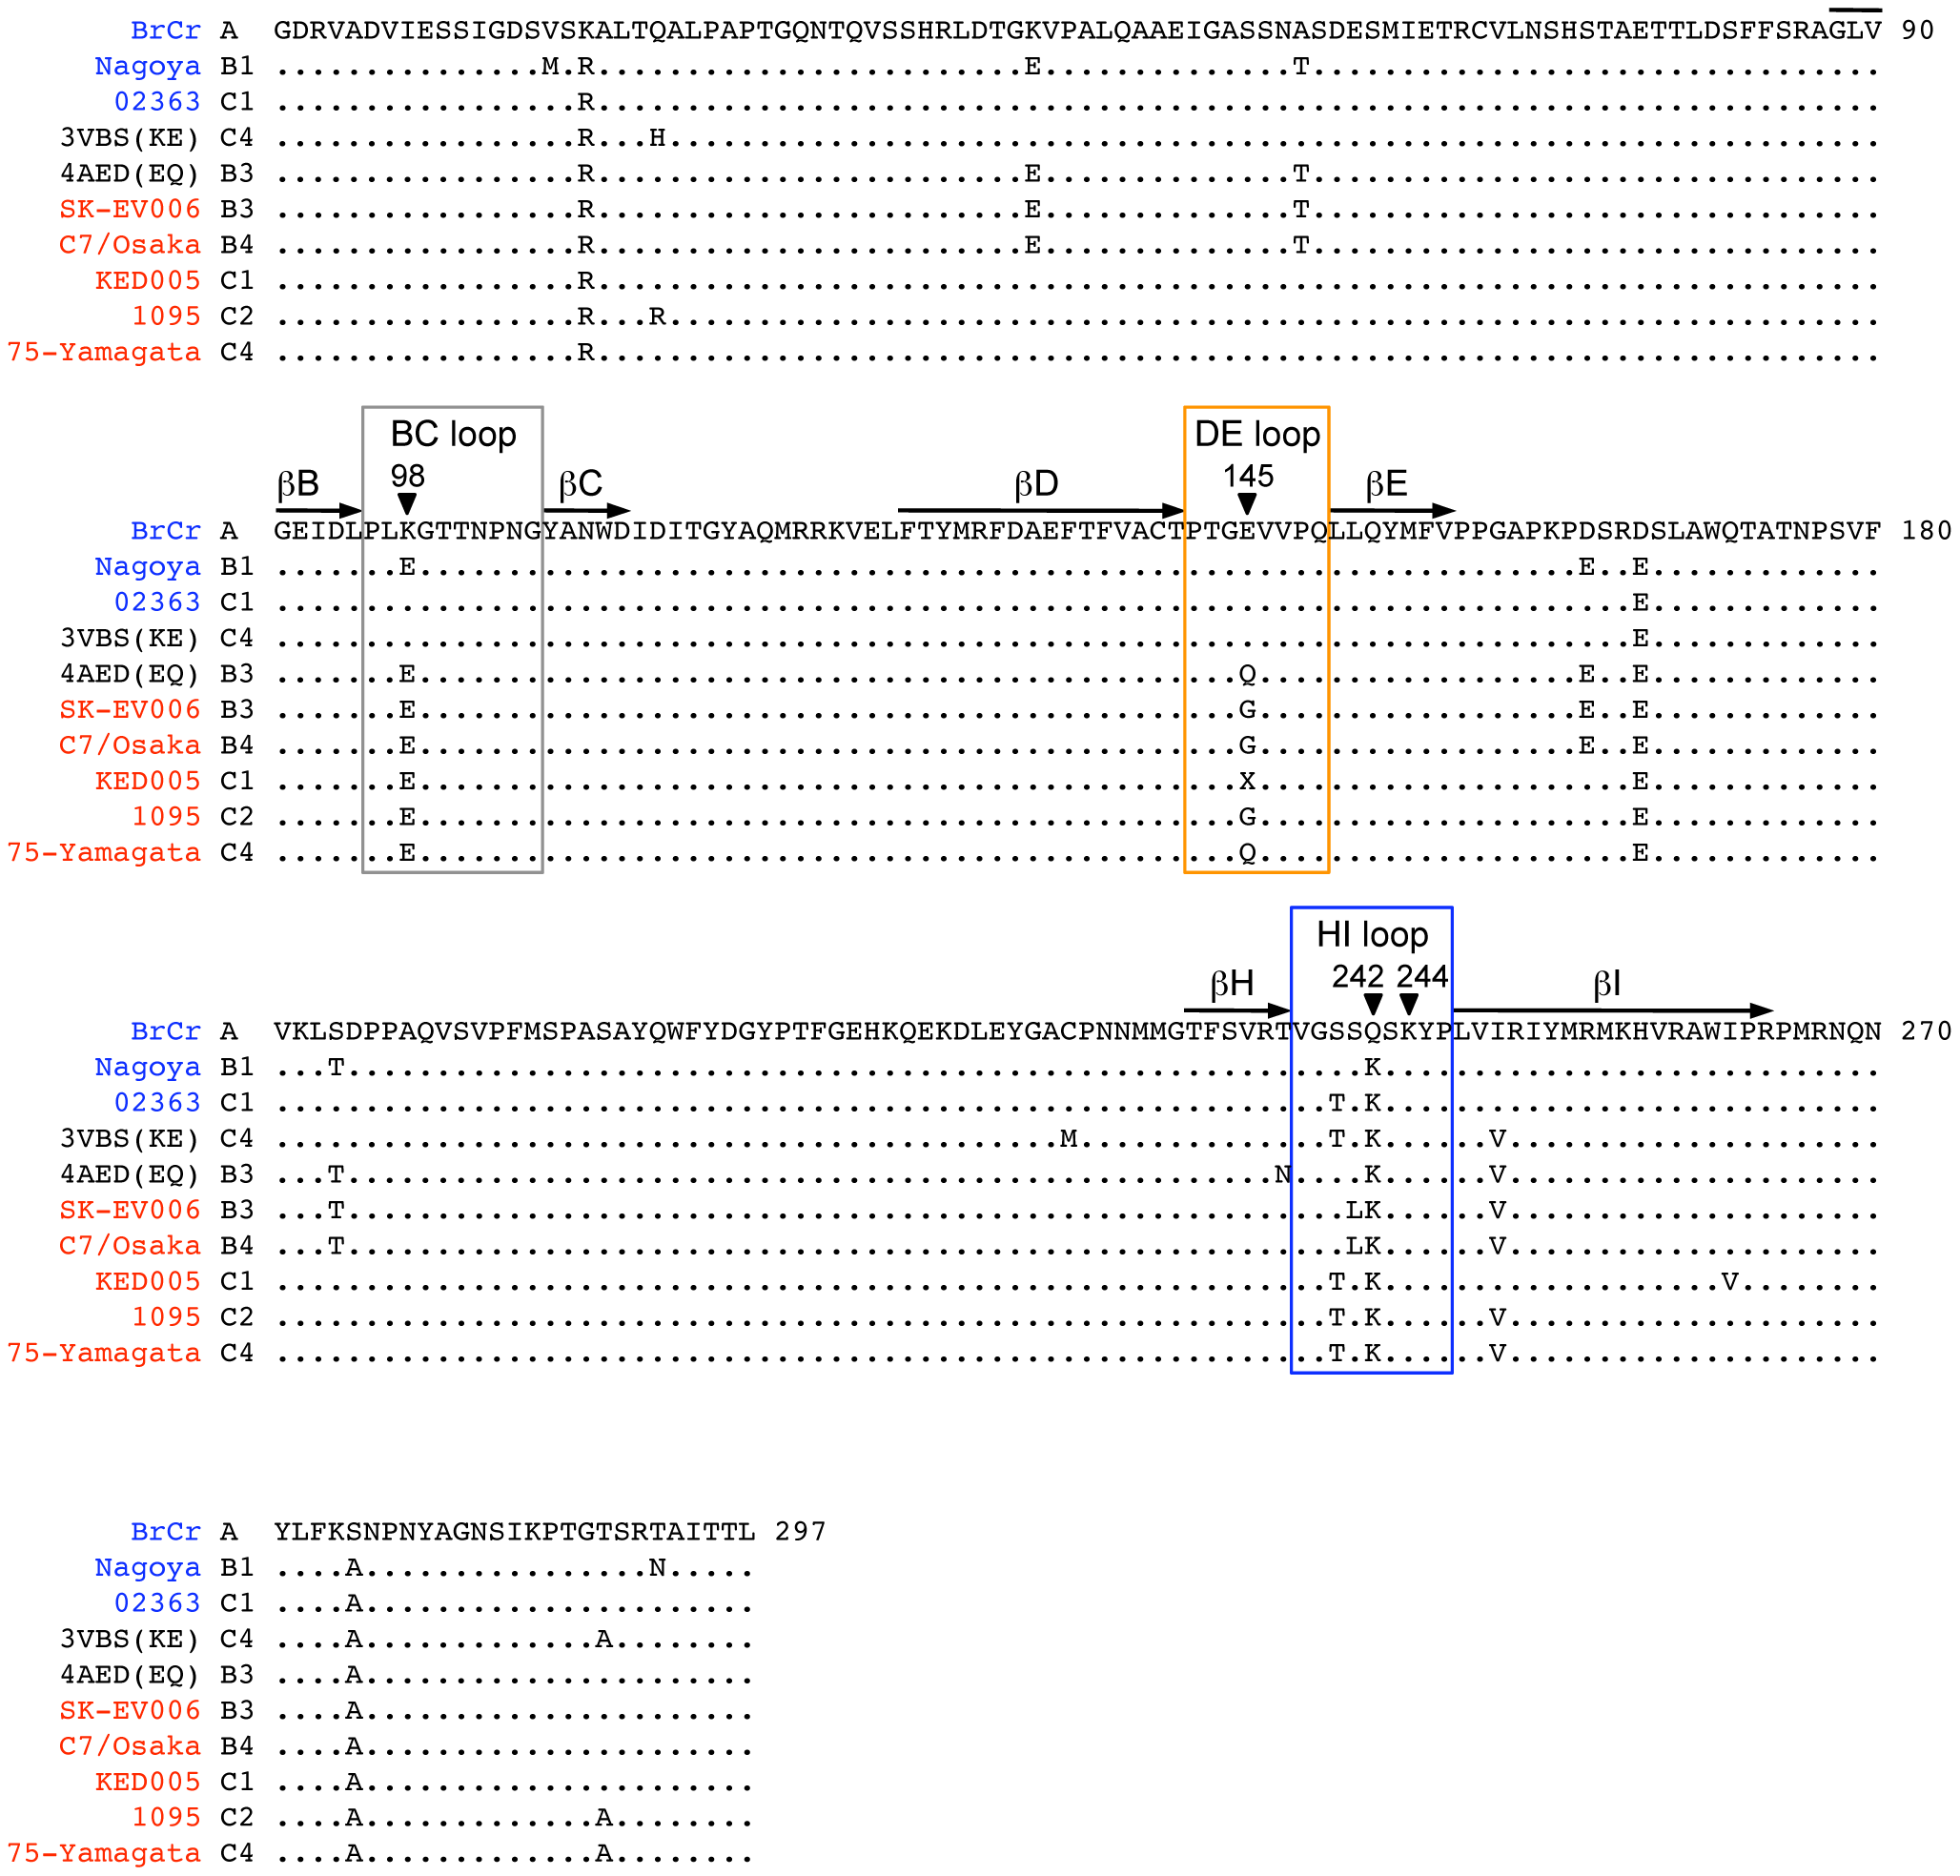 Alignment of EV71 VP1 sequences.